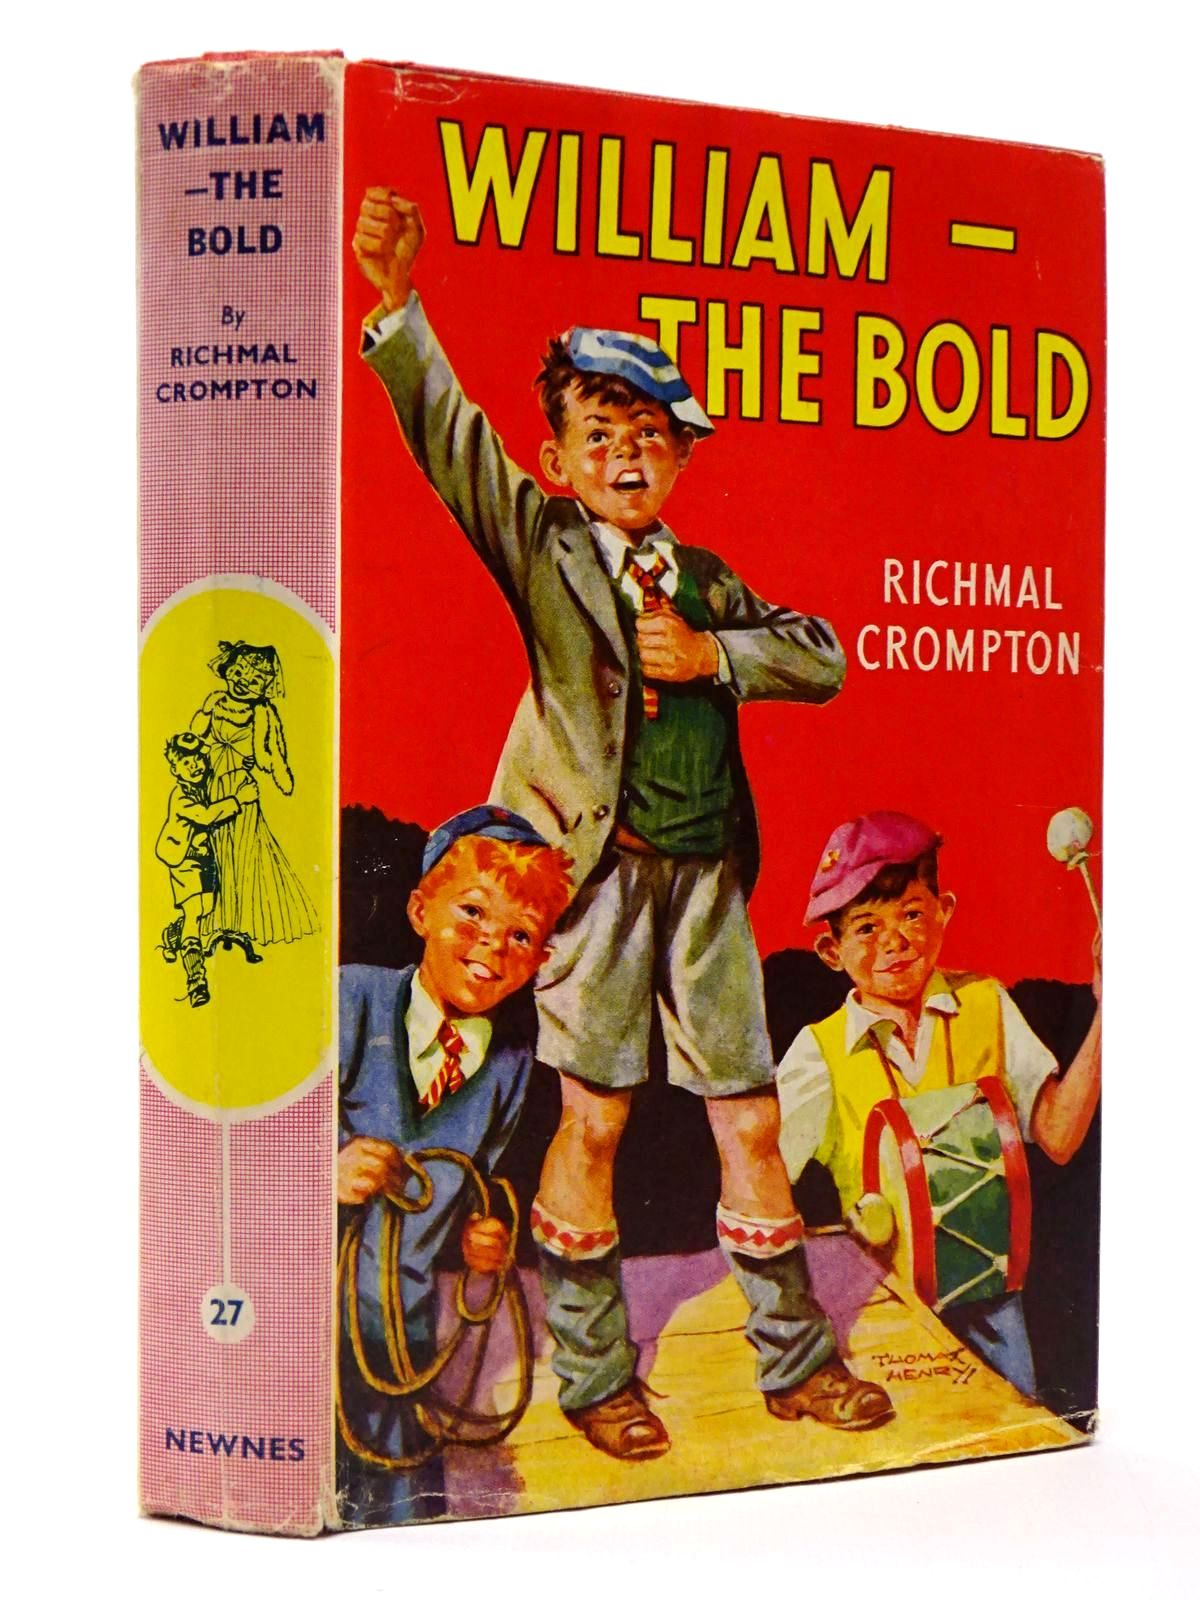 Photo of WILLIAM-THE BOLD written by Crompton, Richmal illustrated by Henry, Thomas published by George Newnes Ltd. (STOCK CODE: 2129807)  for sale by Stella & Rose's Books